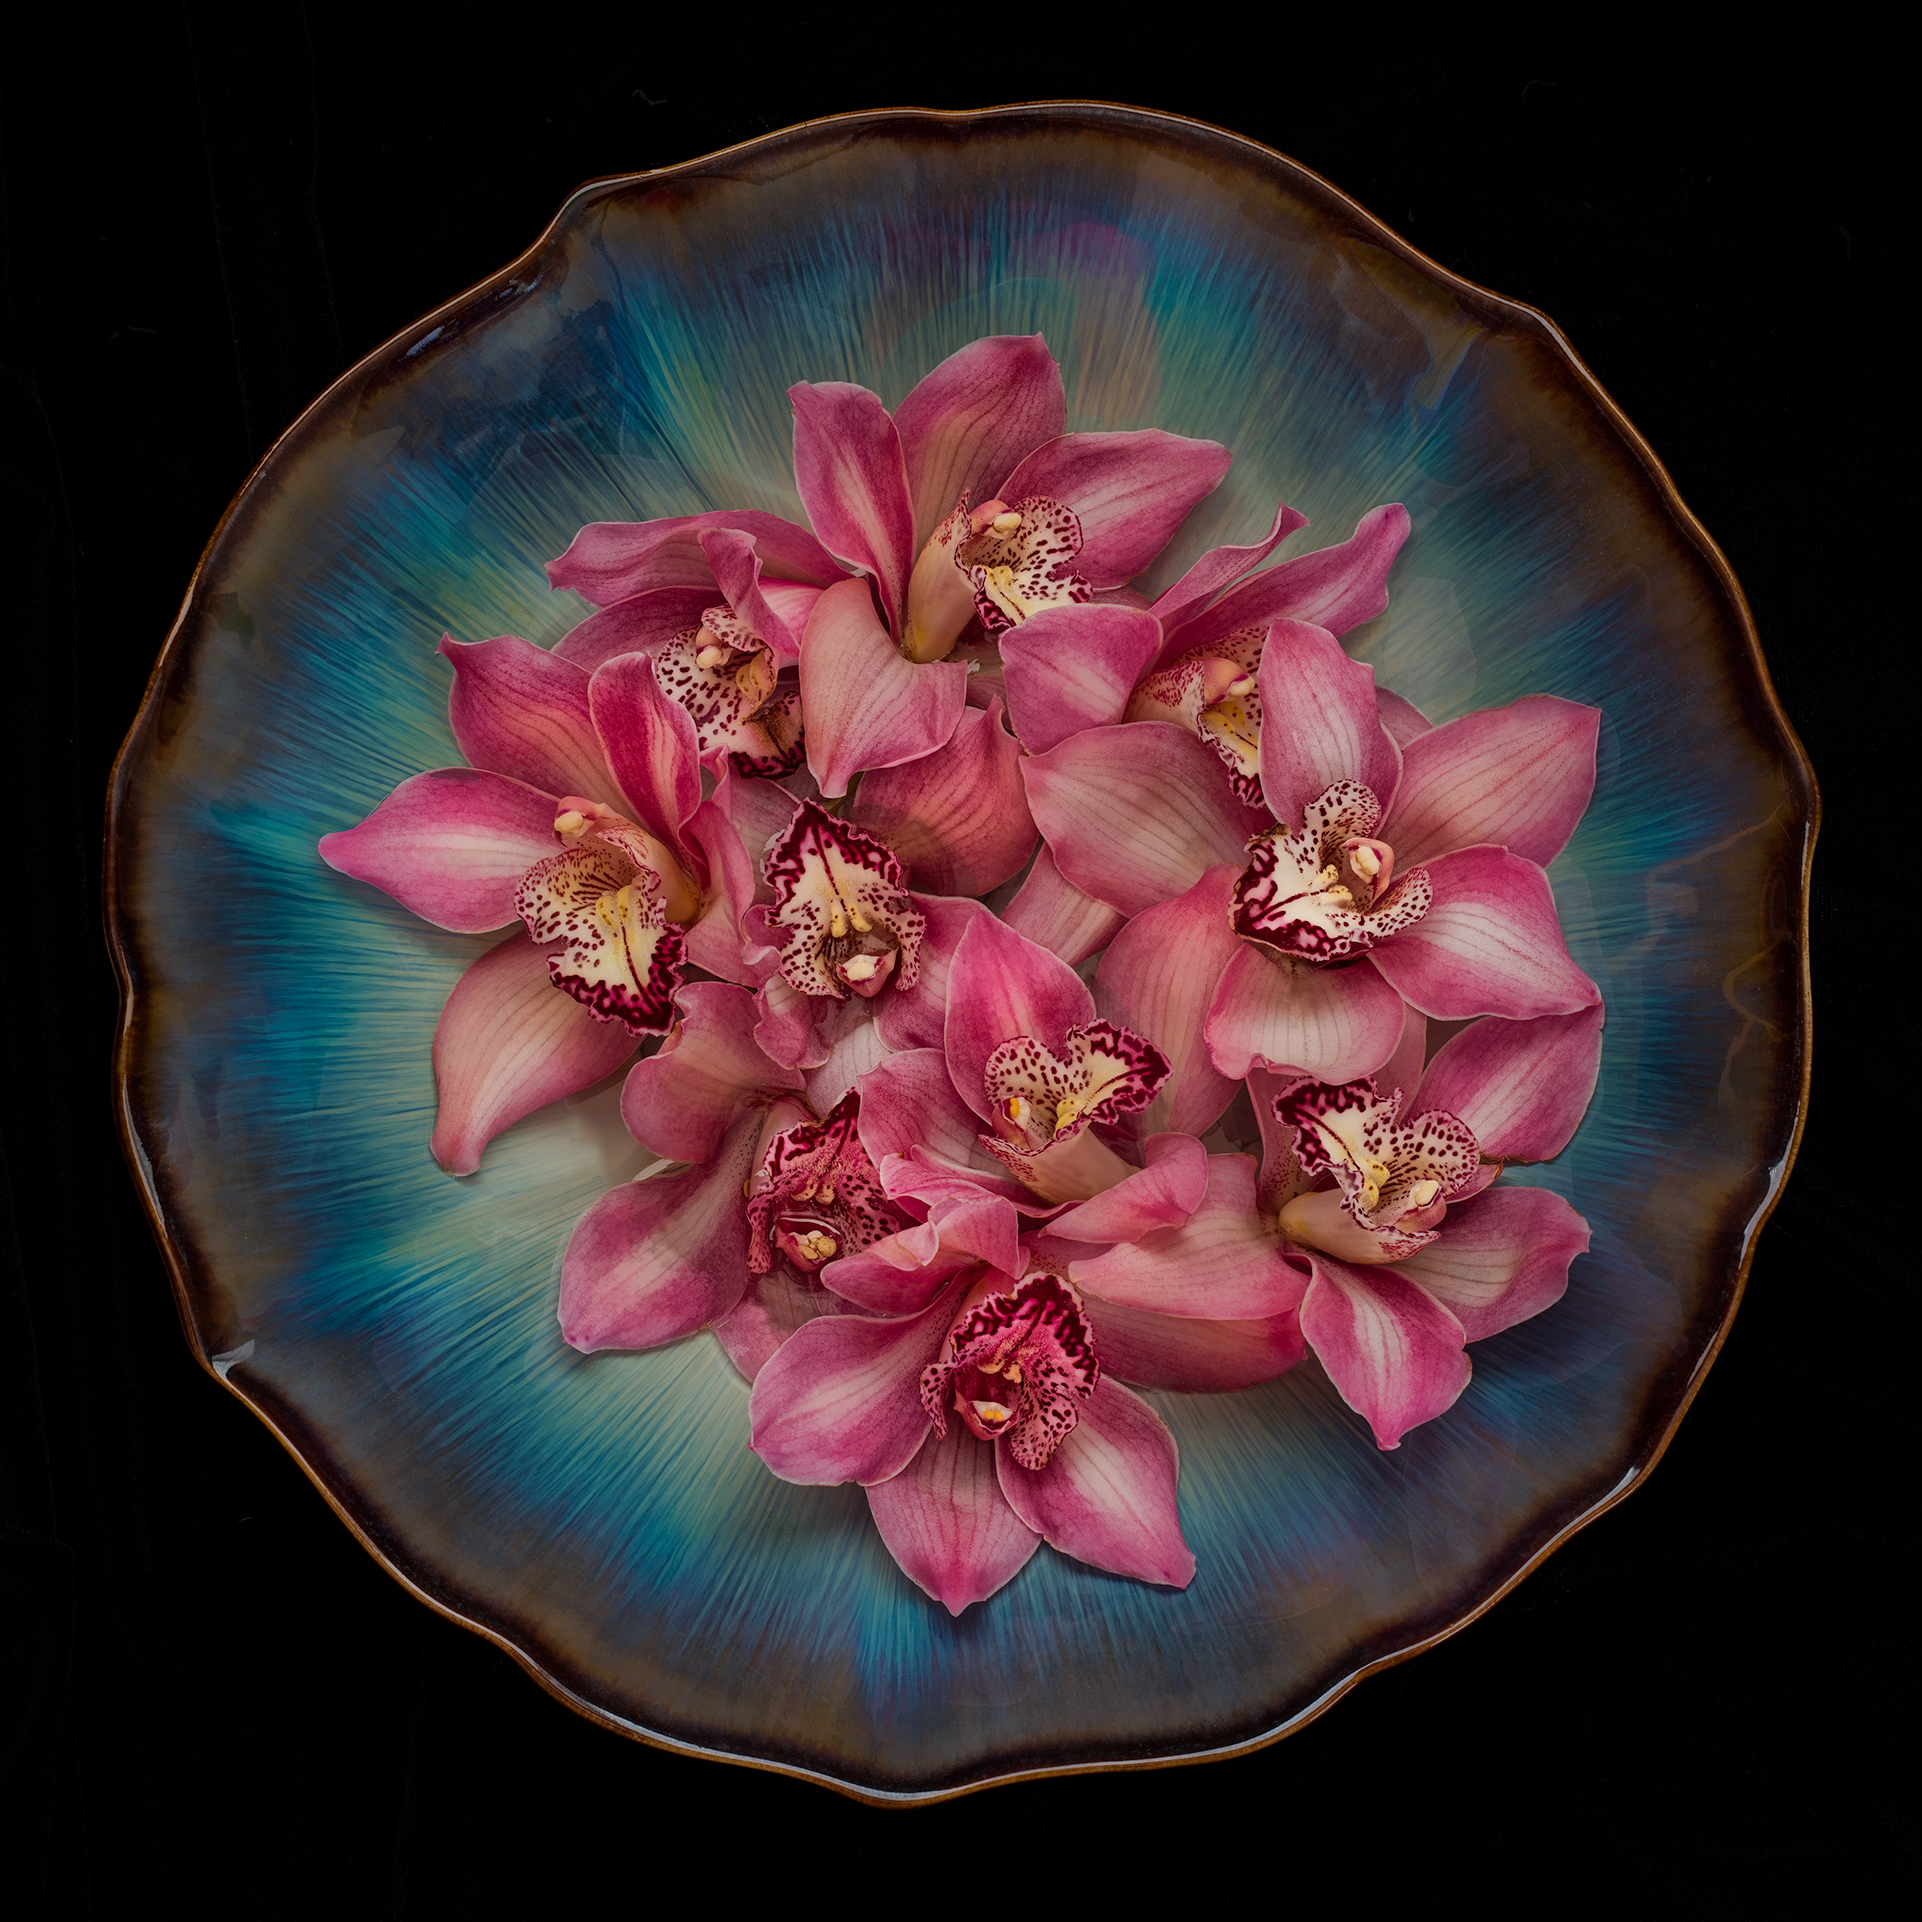 Orchids in a Blue Bowl